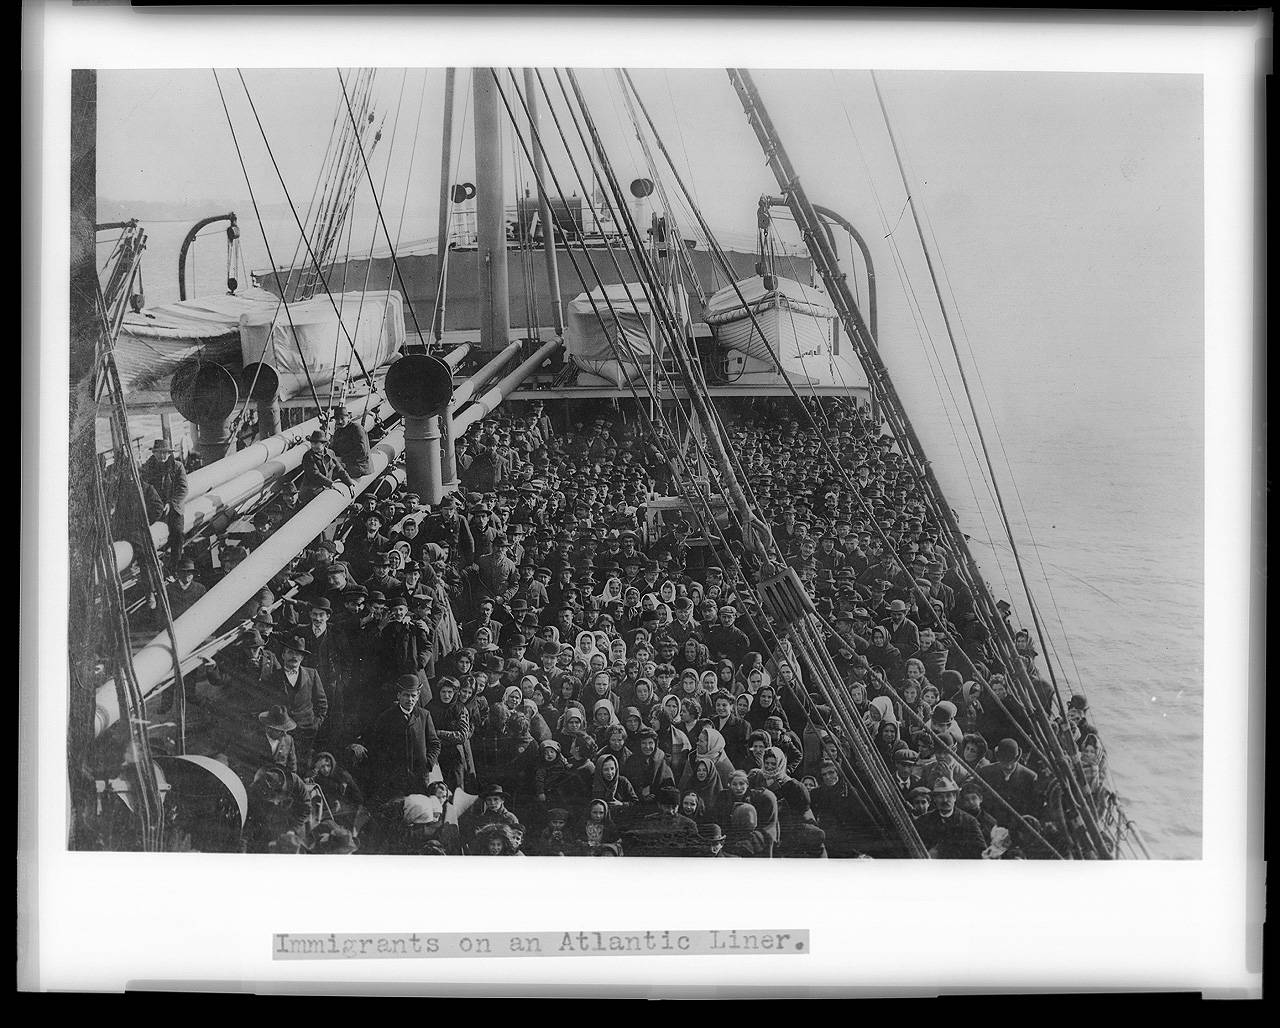 Crowds on 19th century immigrant ships